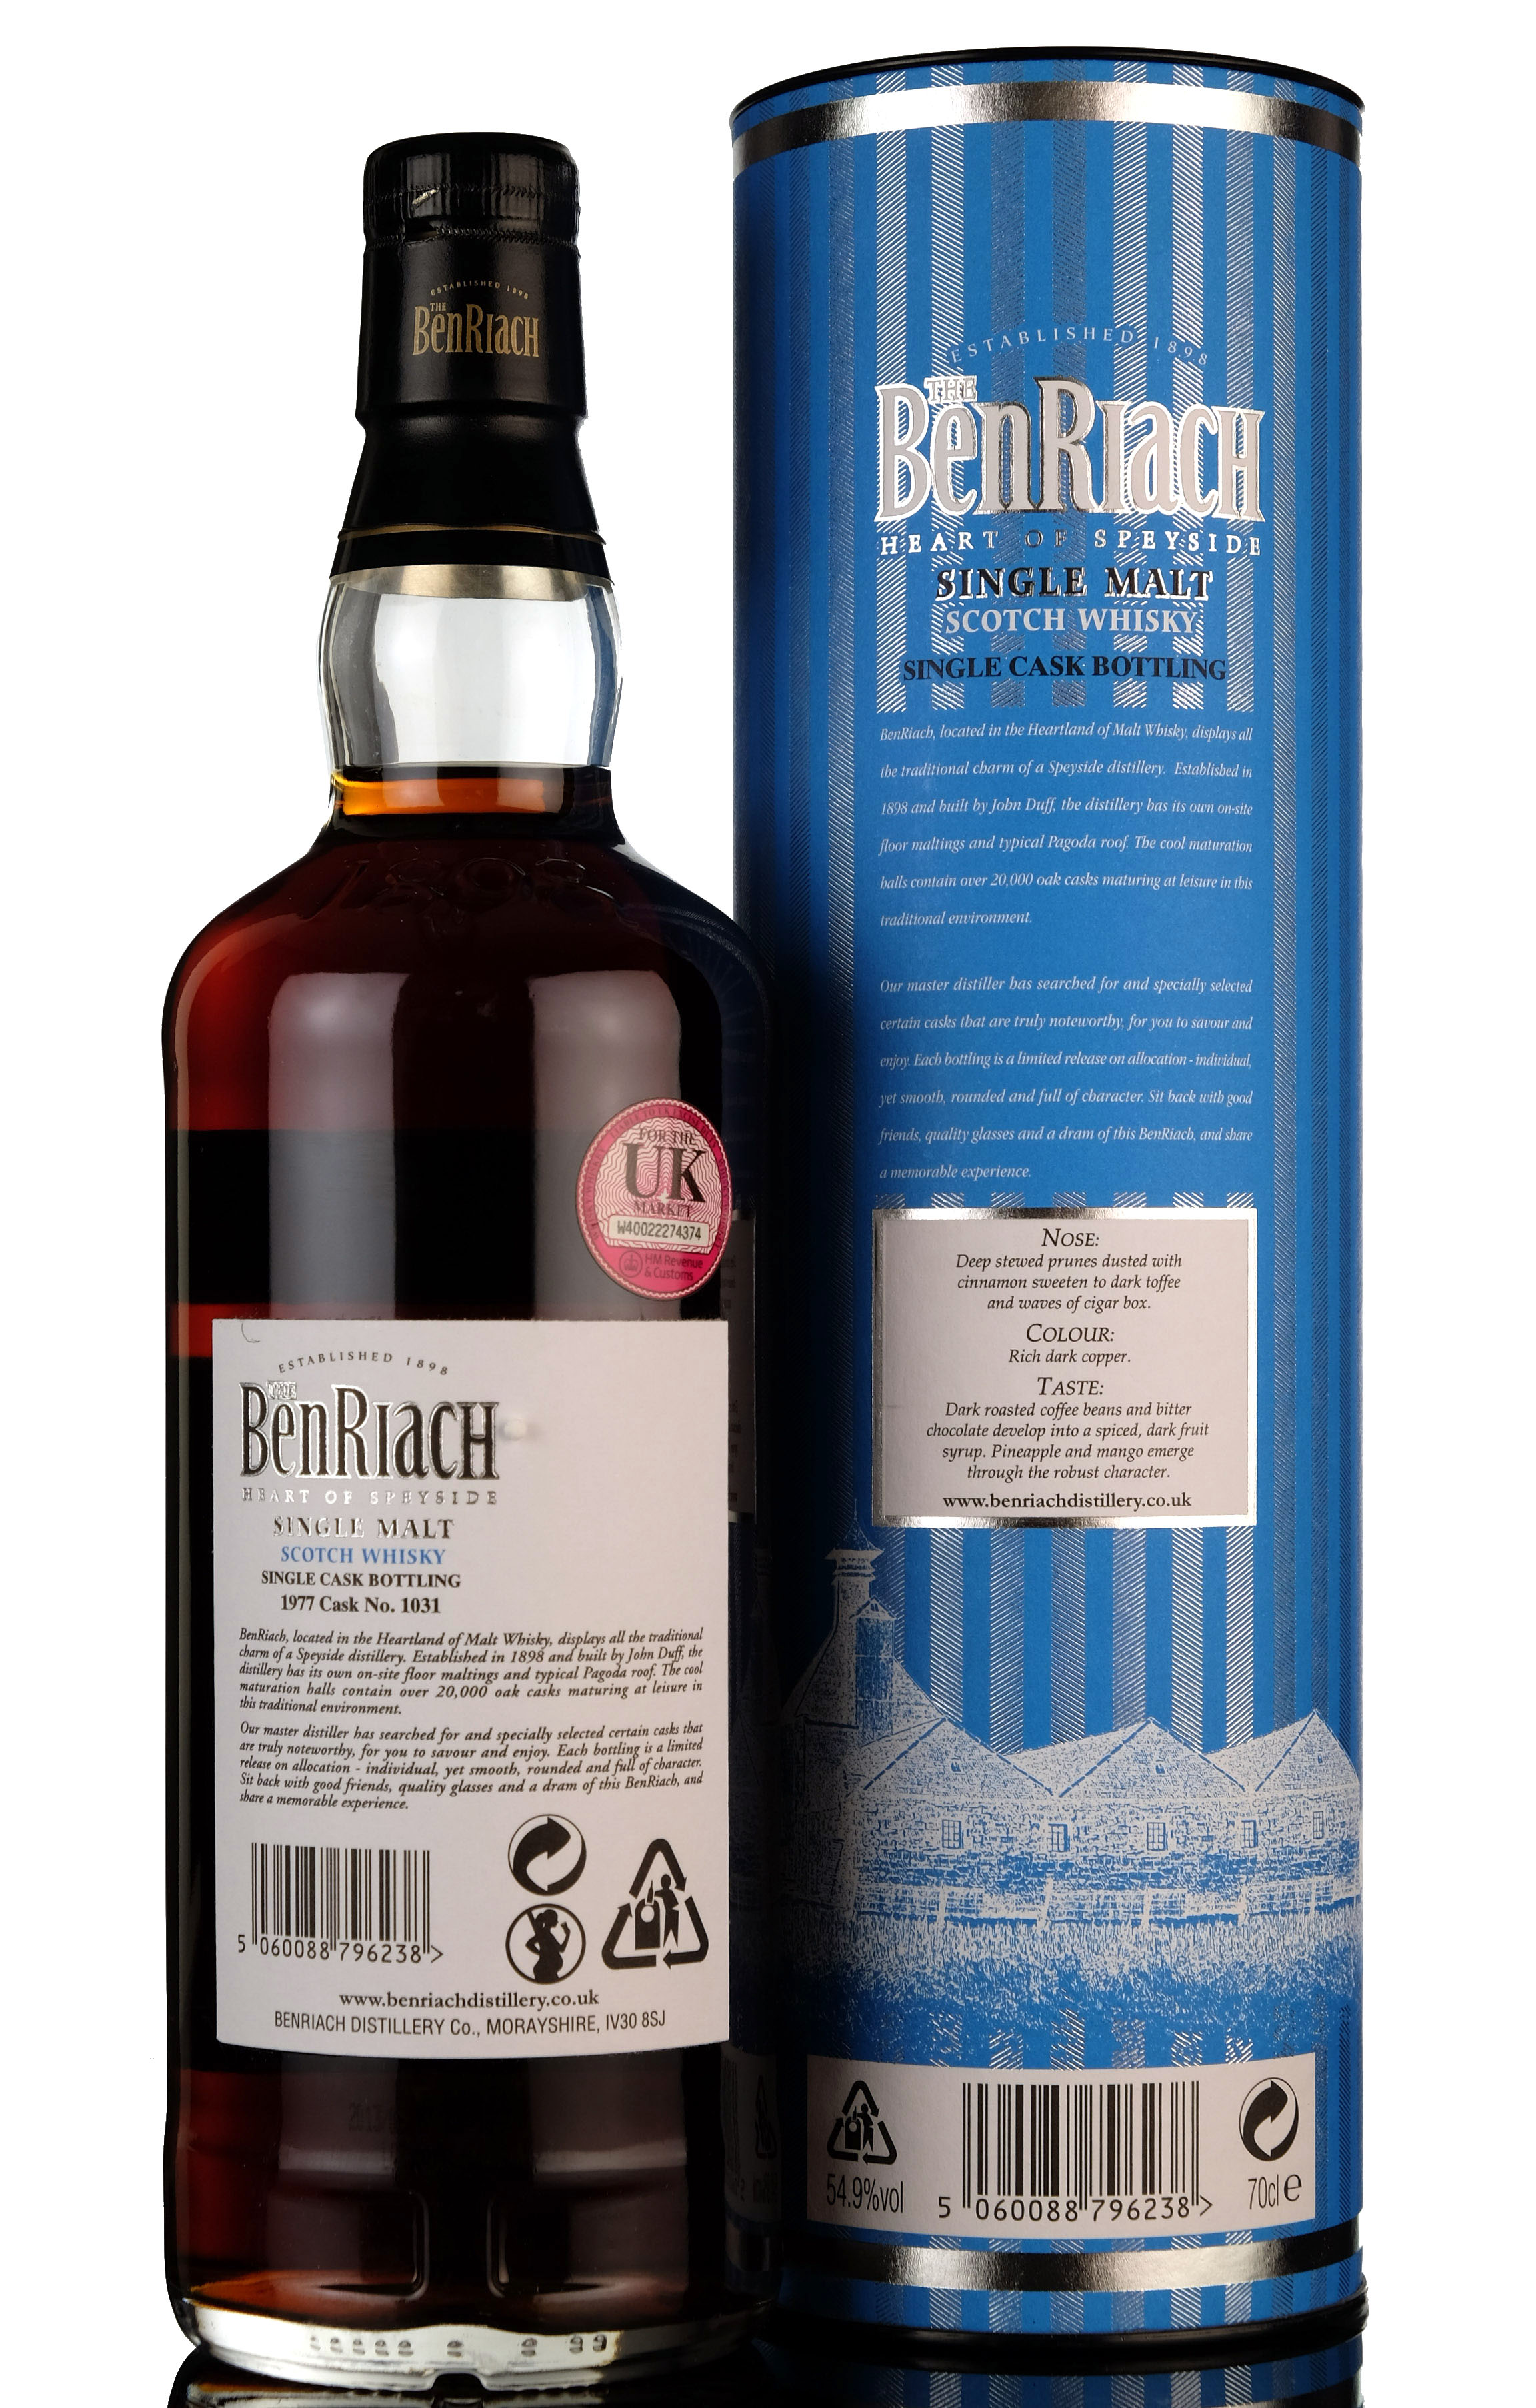 benriach 1977-2013 - 36 year old - single cask 1031